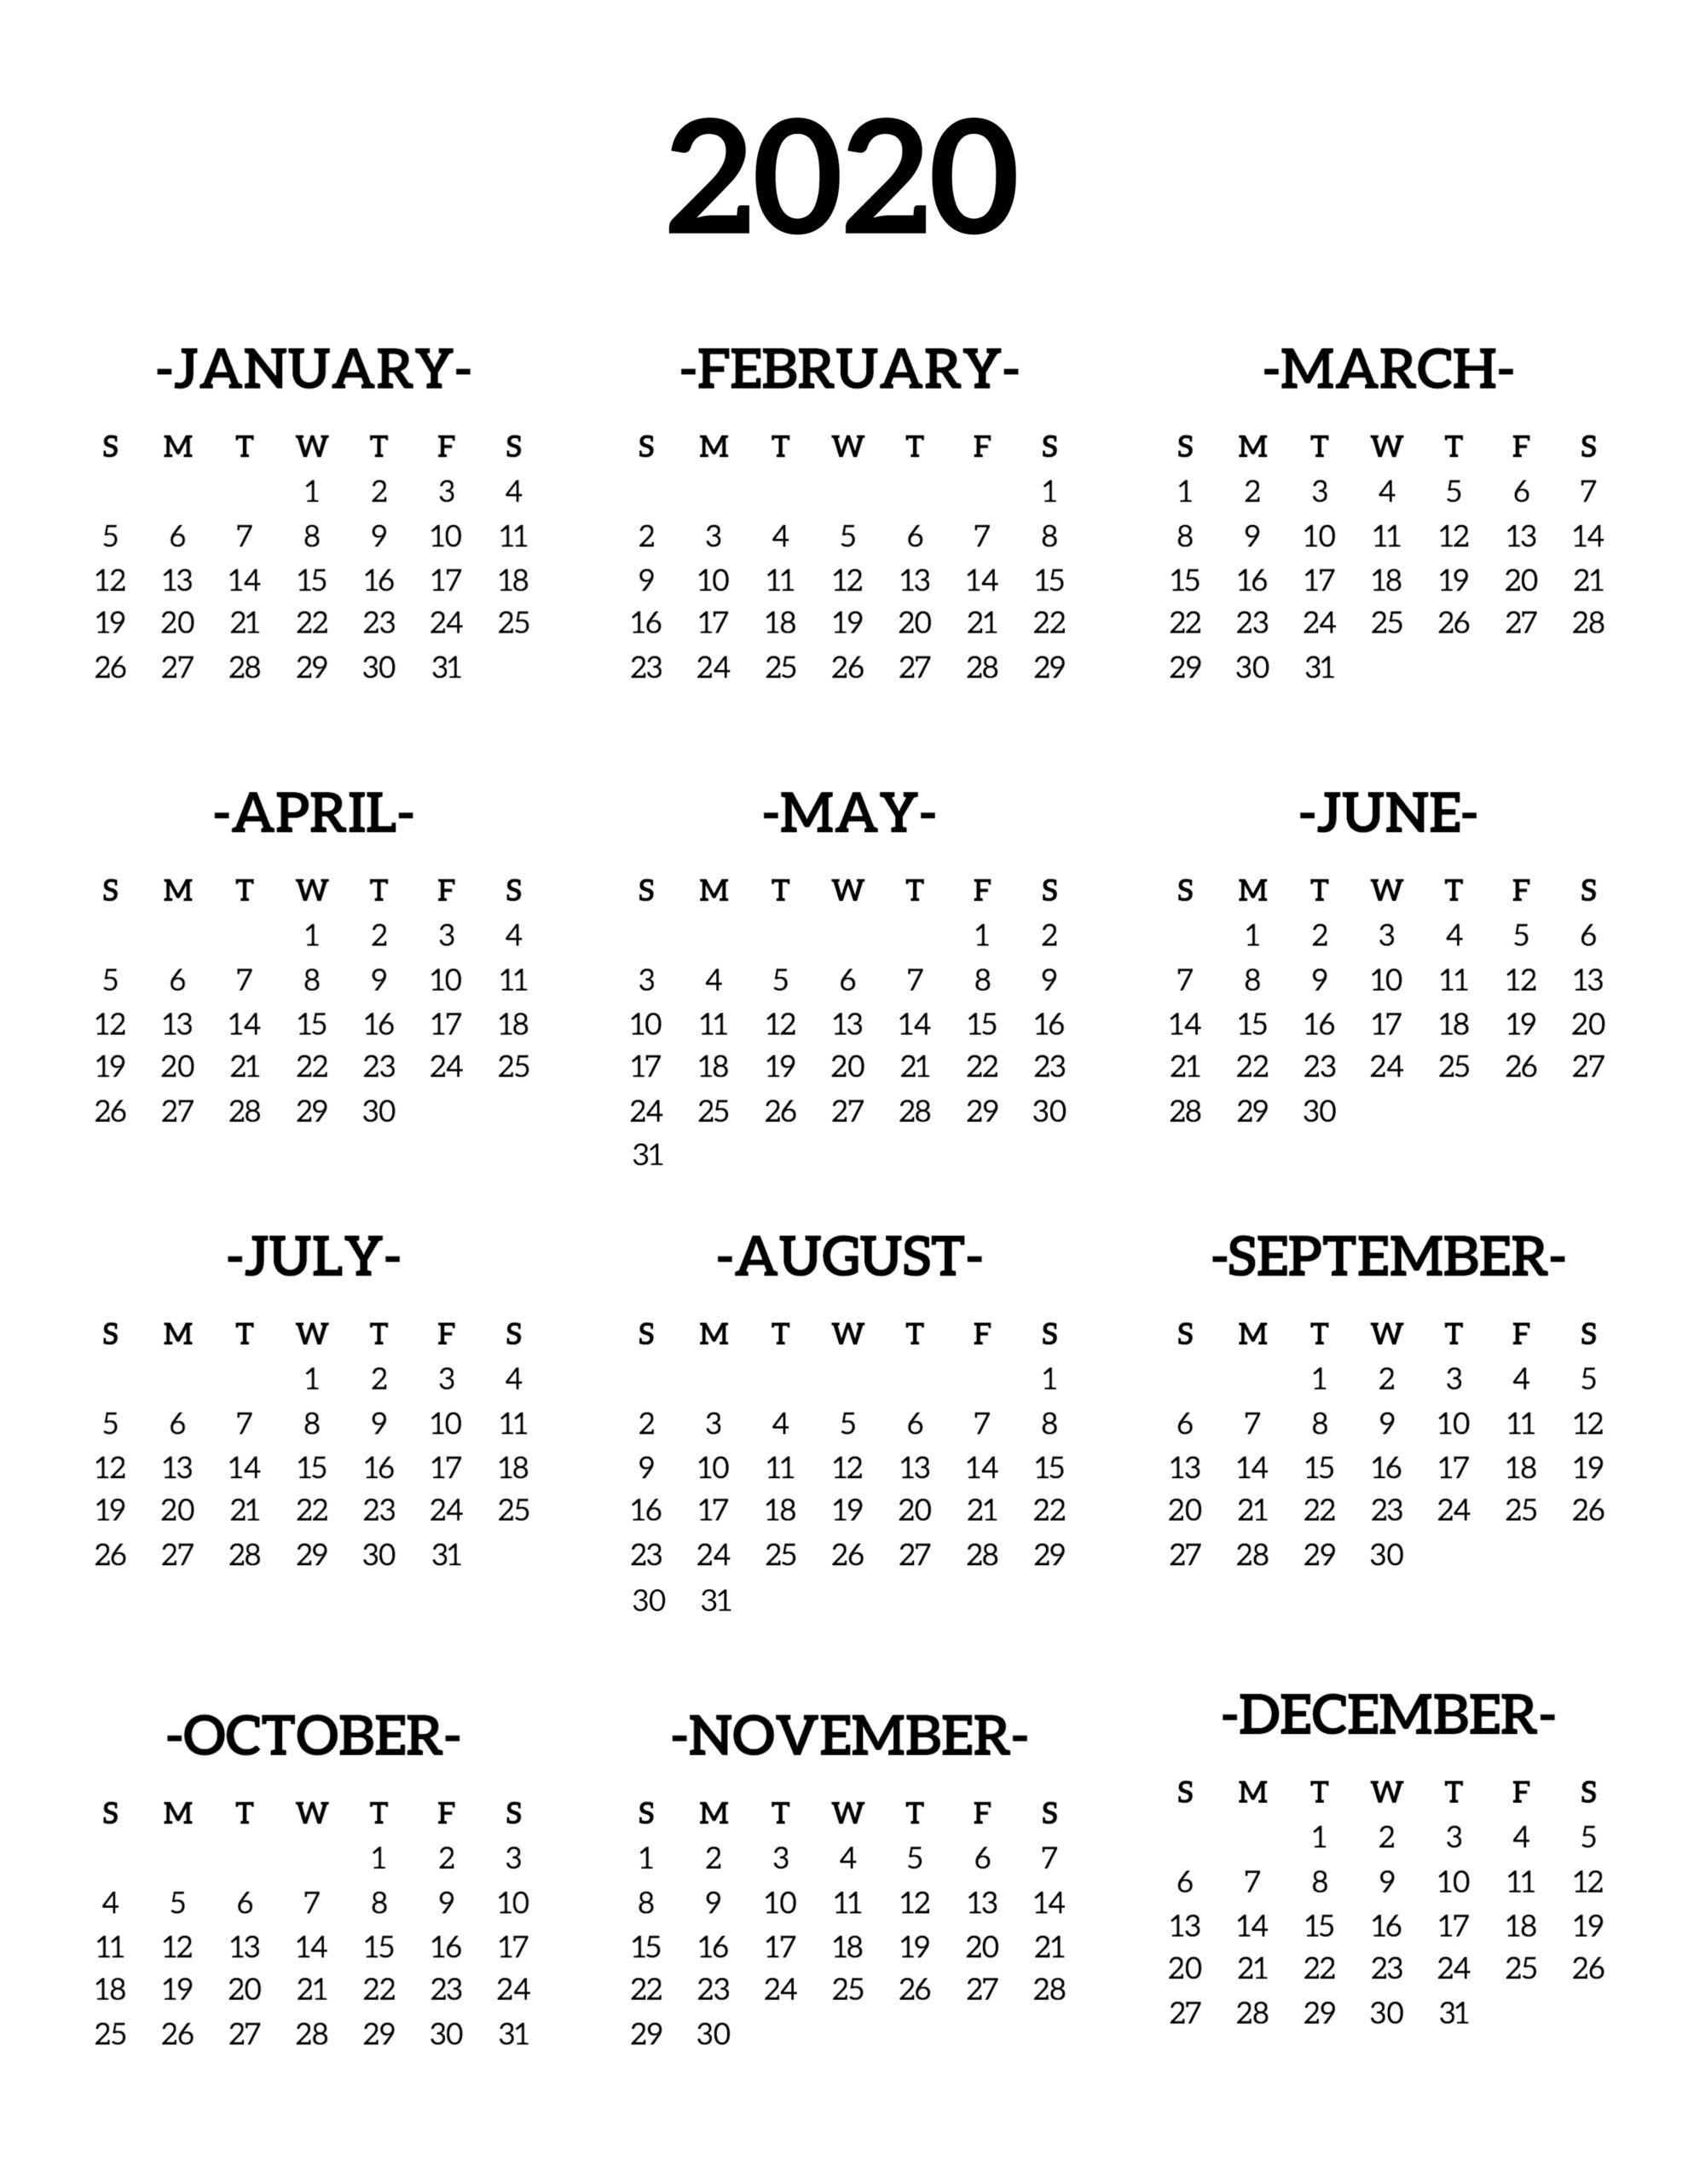 Calendar 2020 Printable One Page - Paper Trail Design in Year At A Glance 2020 Free Printable